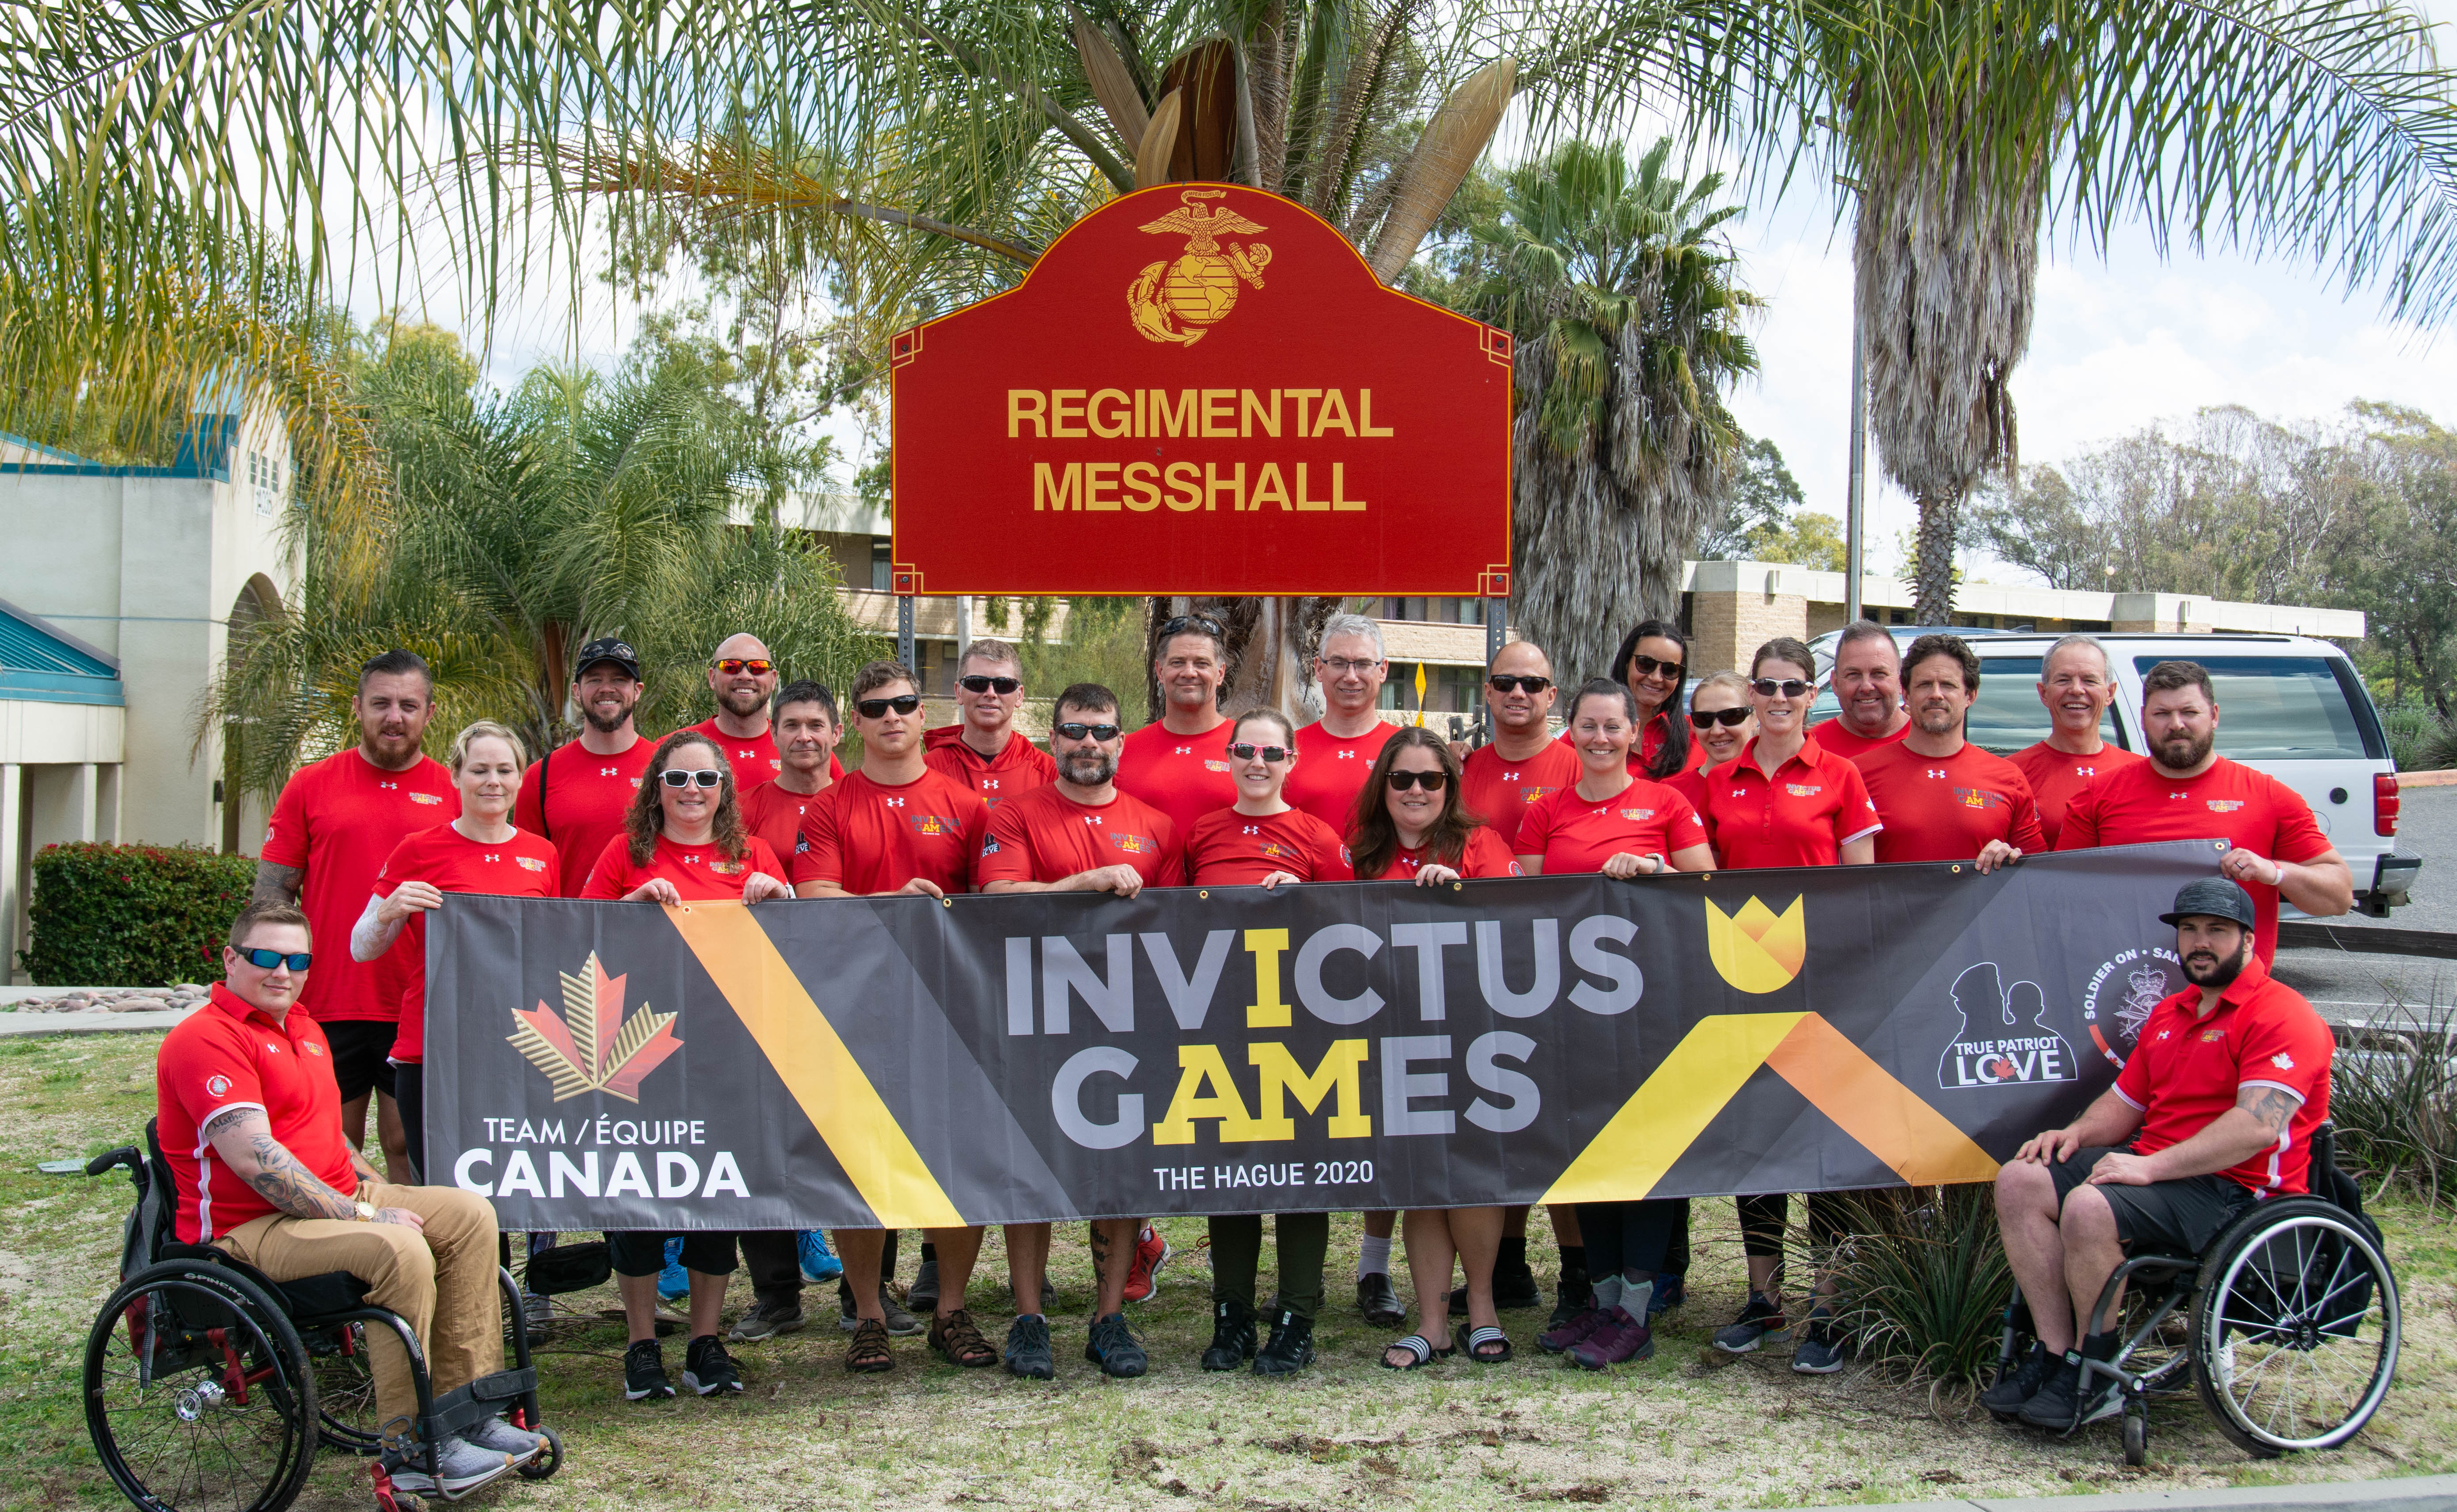 Team Canada Concludes Successful U.S Marines Trials Image